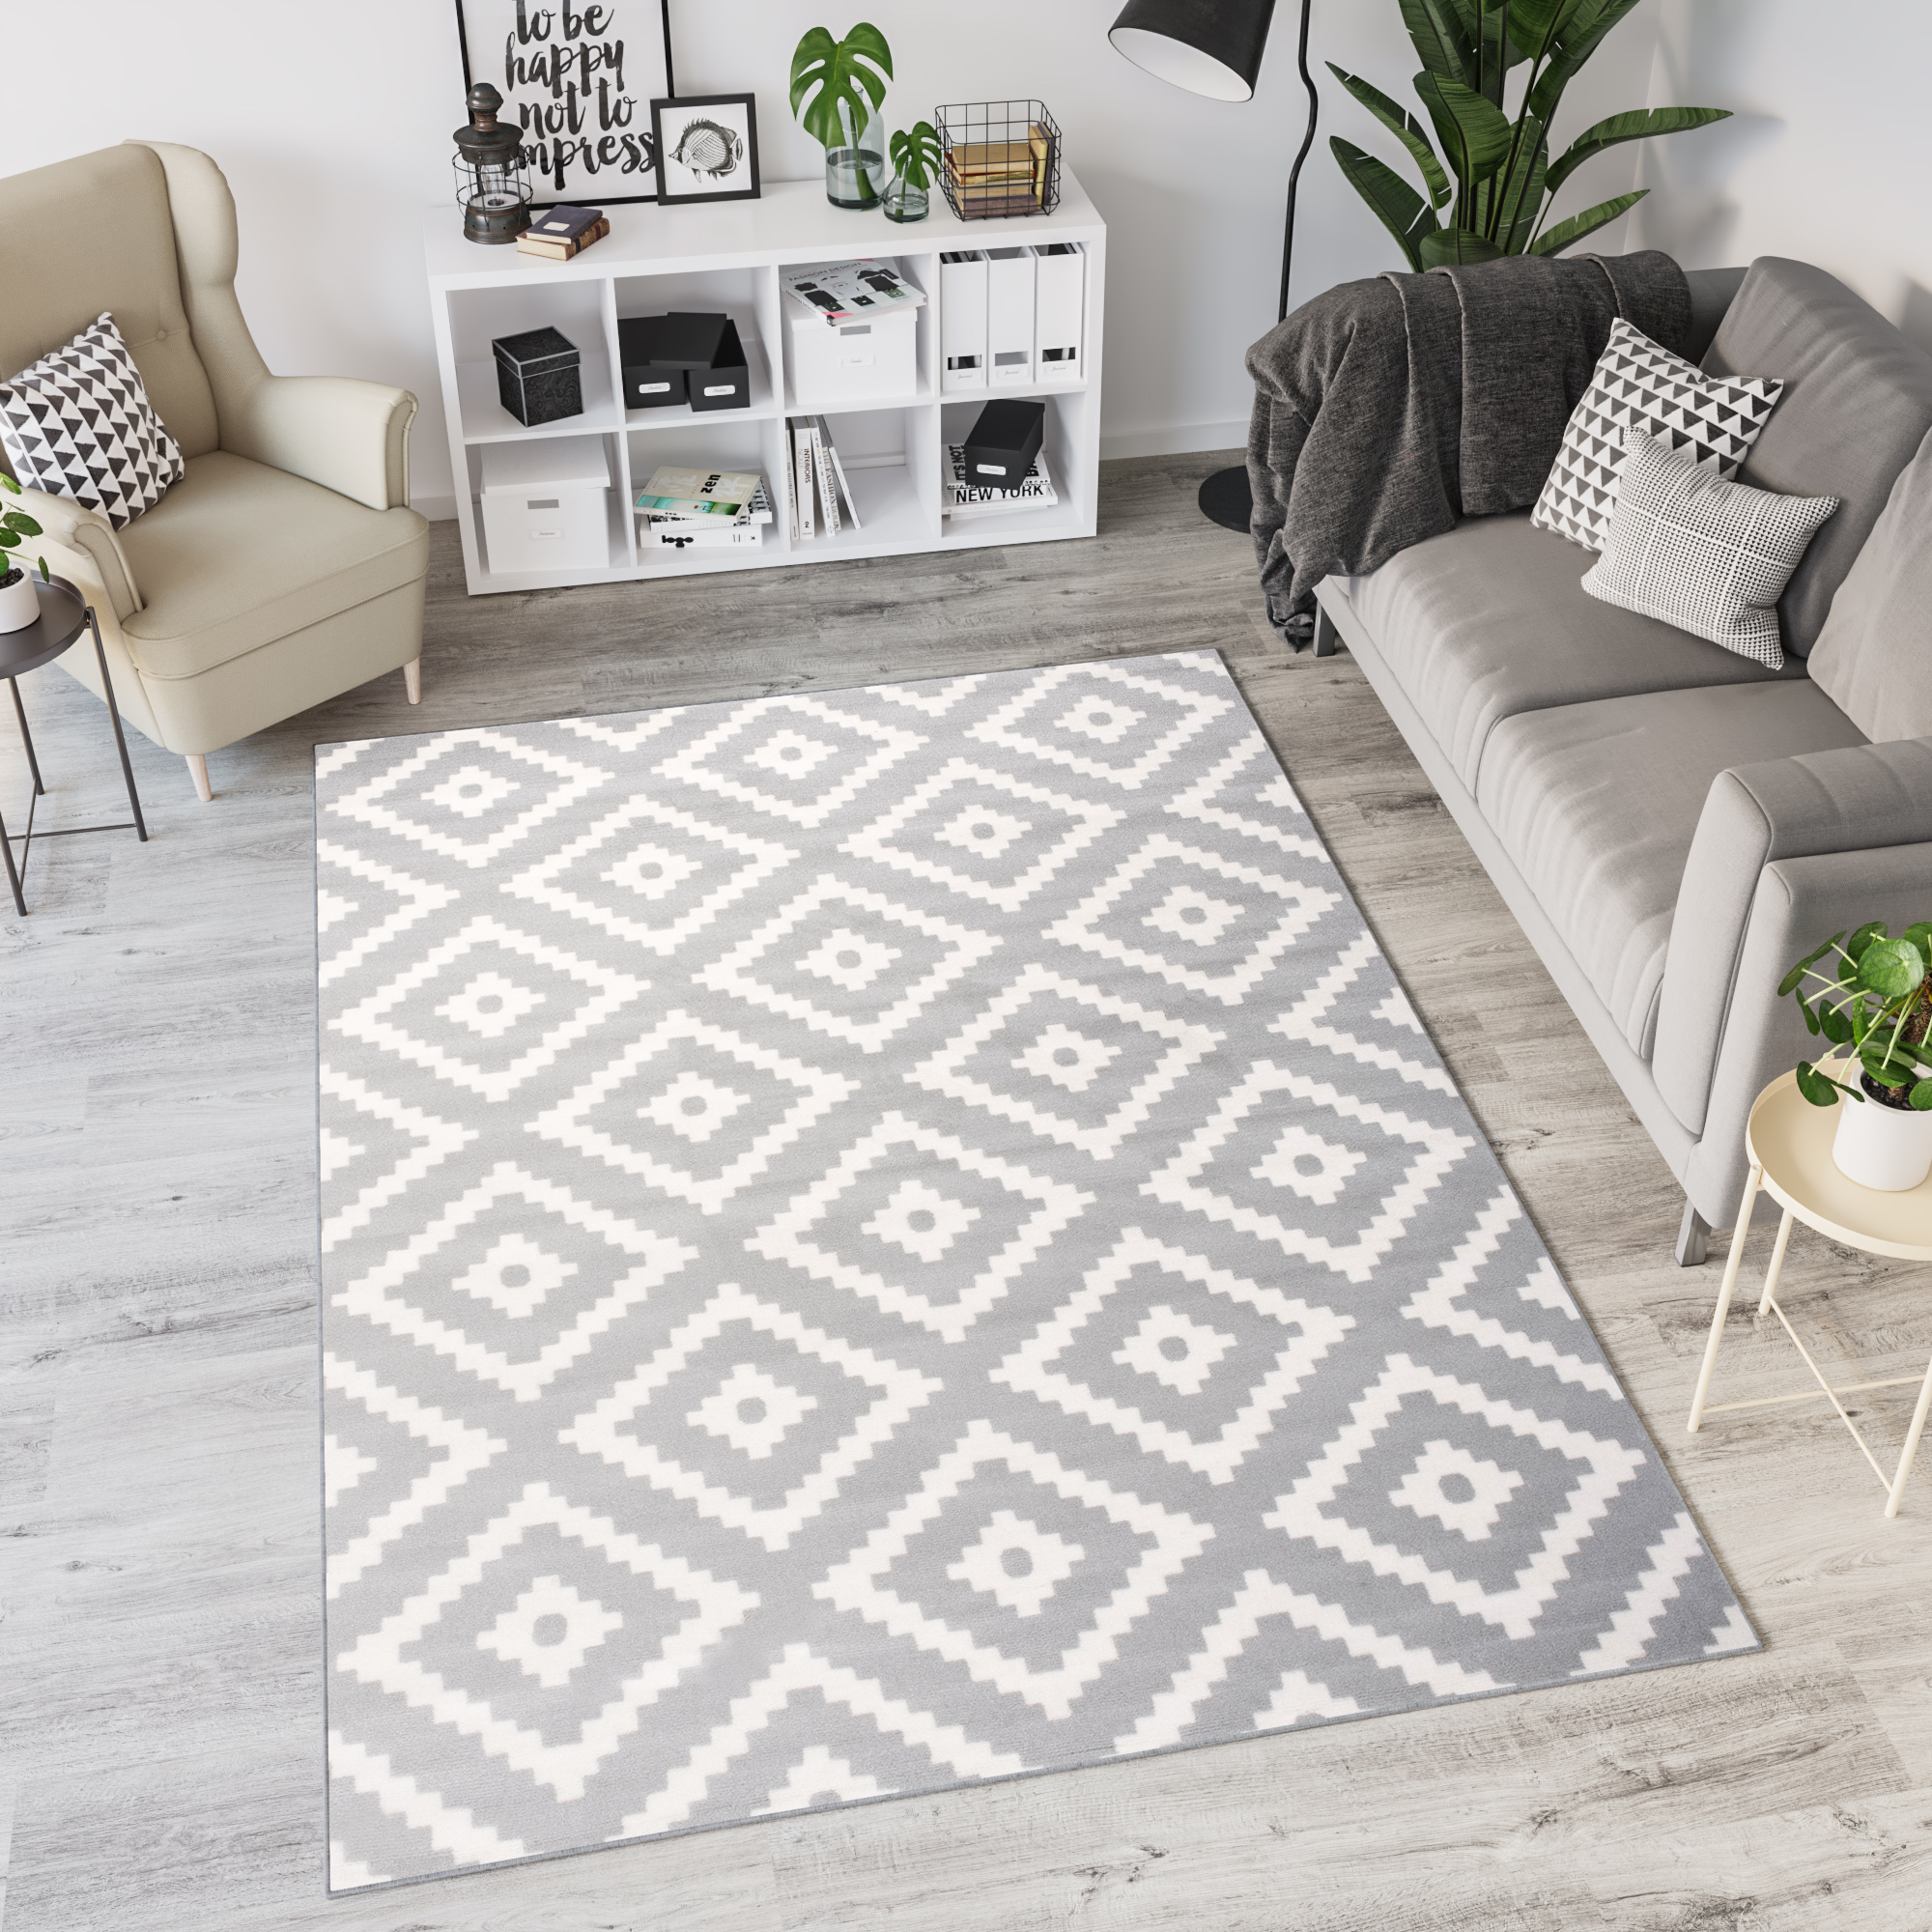 Grey White Black Area Rug Modern Bedroom Living Room Geometric Trellis Carpet Ebay